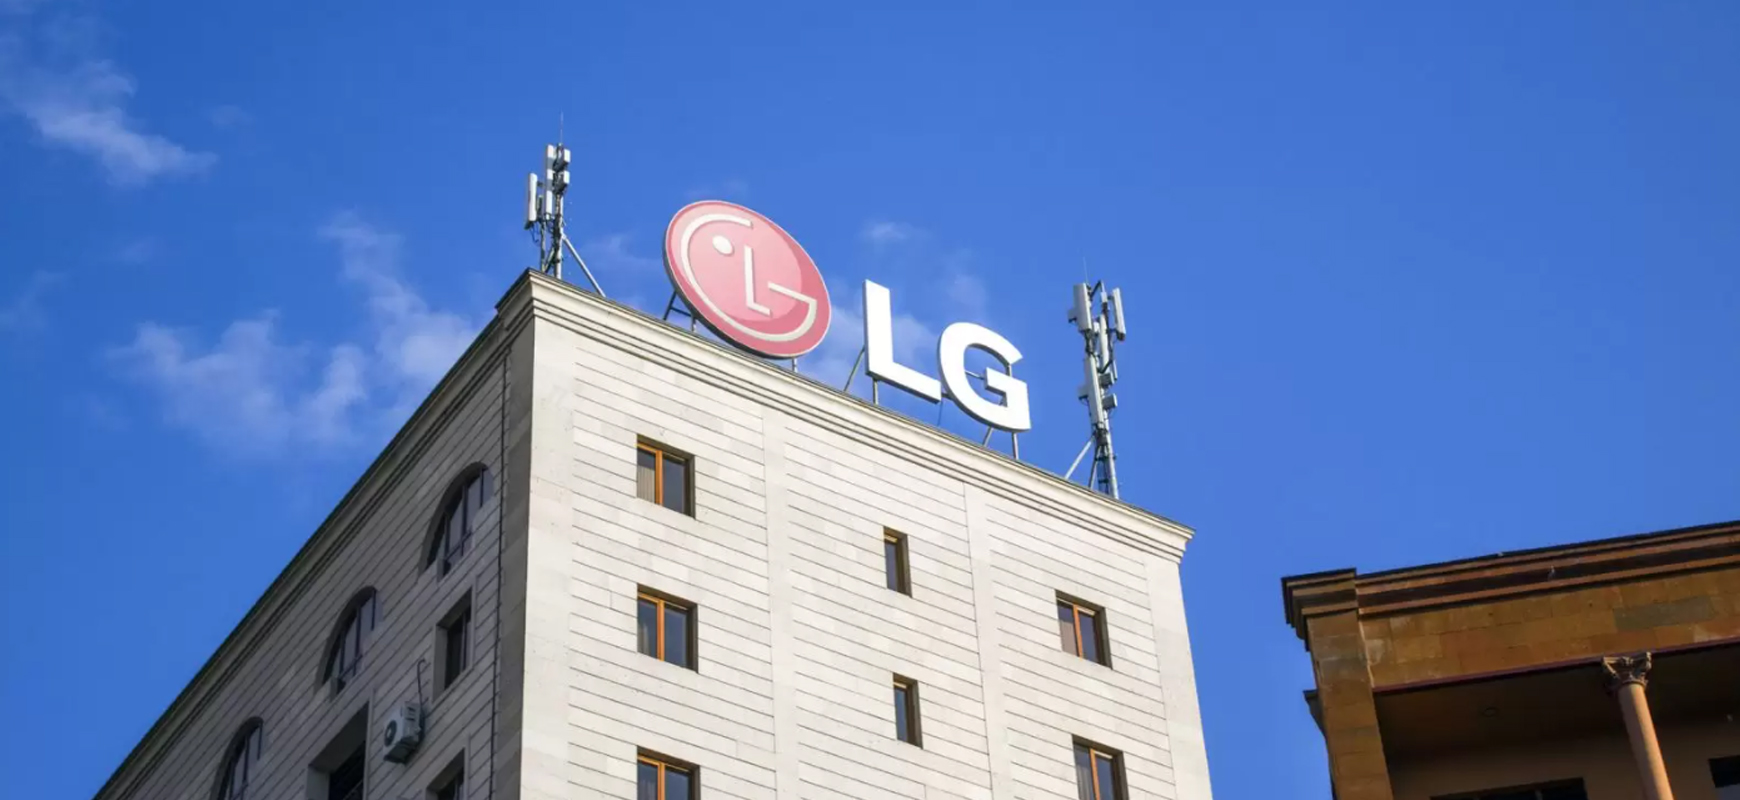 LG rooftop sign in a big size displaying the brand name and logo made of aluminum